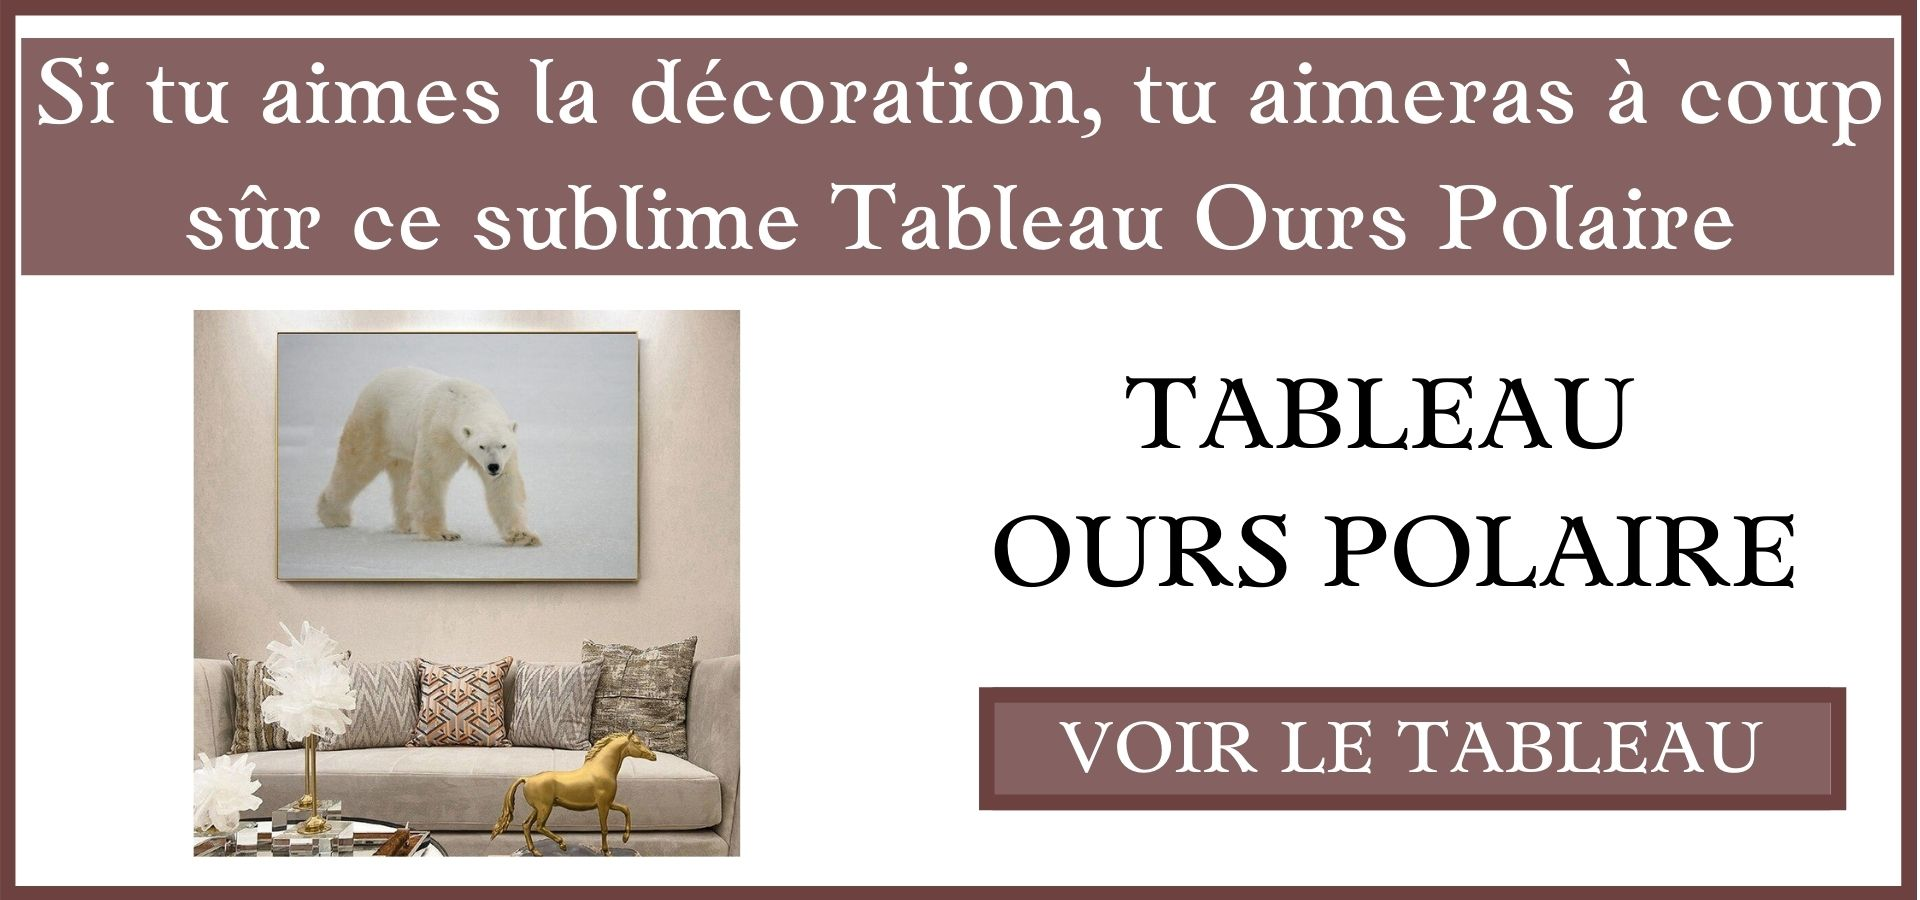 Tableau Ours Polaire